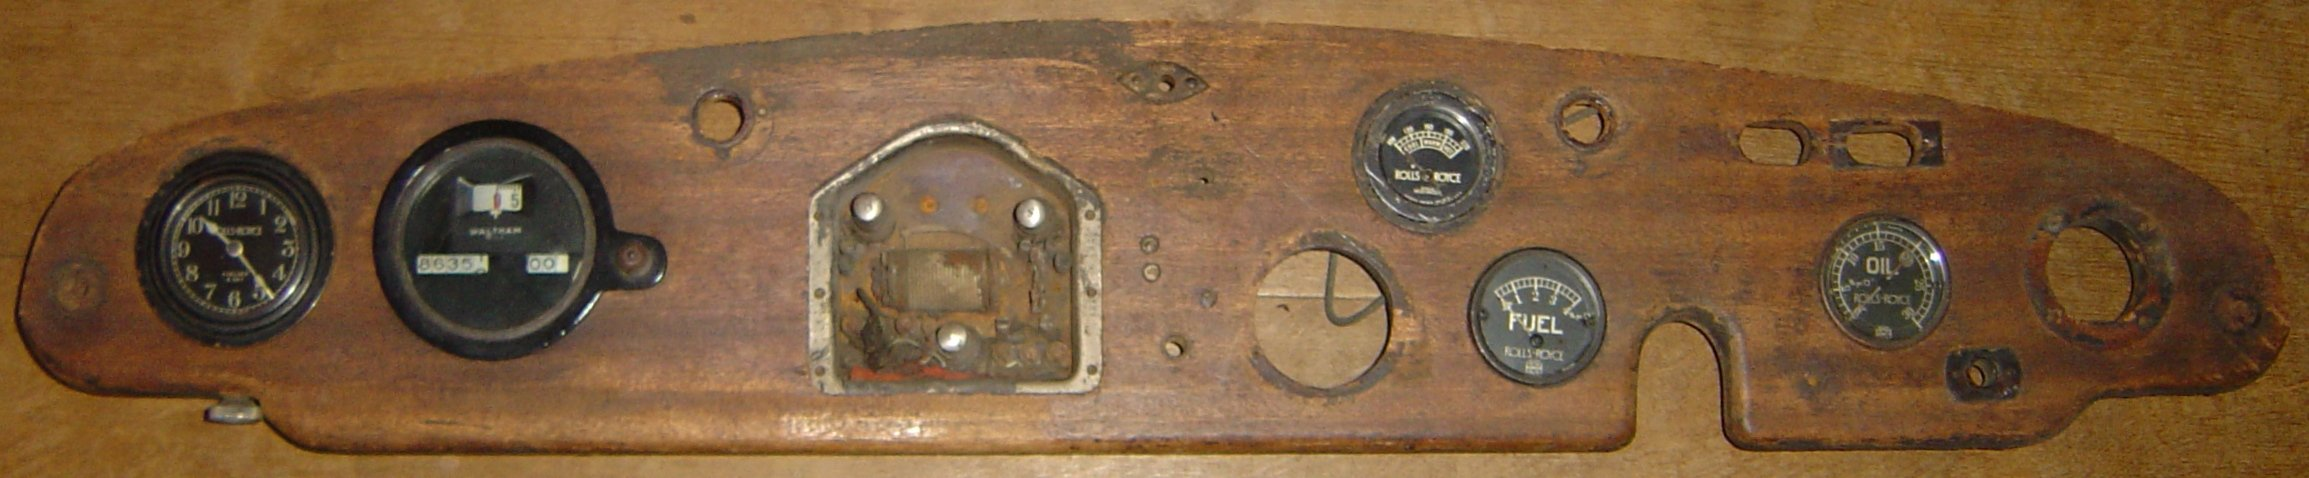 1927 Rolls Royce Ghost dashboard and instruments For Sale (picture 1 of 1)